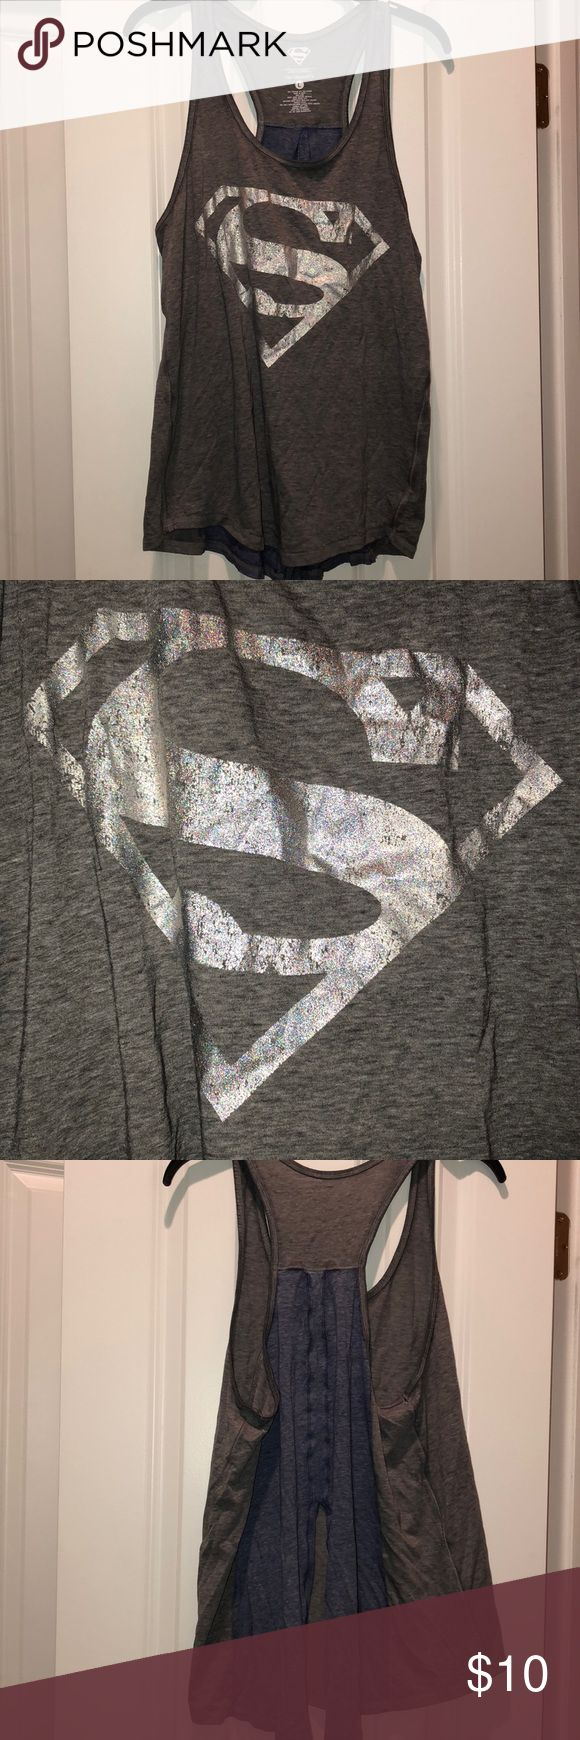 Superman tank size large Never worn  Sparkly Superman logo 😍 Smoke and pet free home kohls Tops Tank Tops